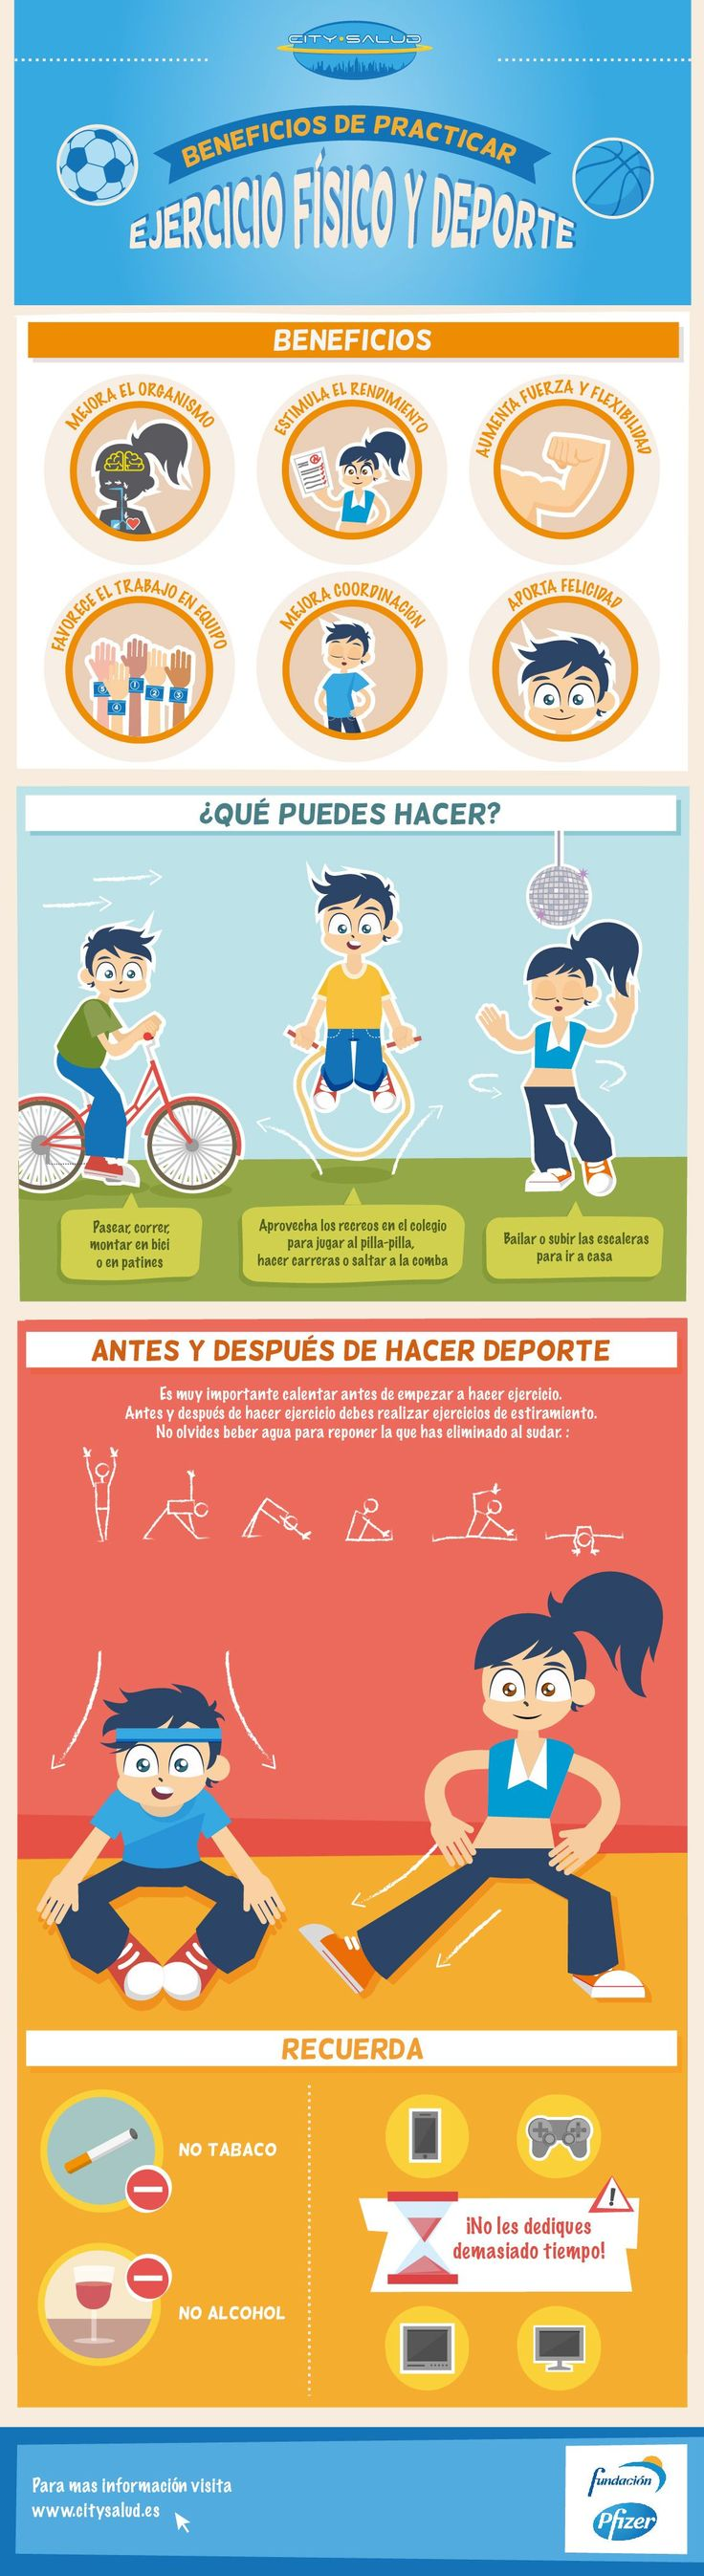 12310 best learn spanish images on pinterest spanish for Ejercicio fisico